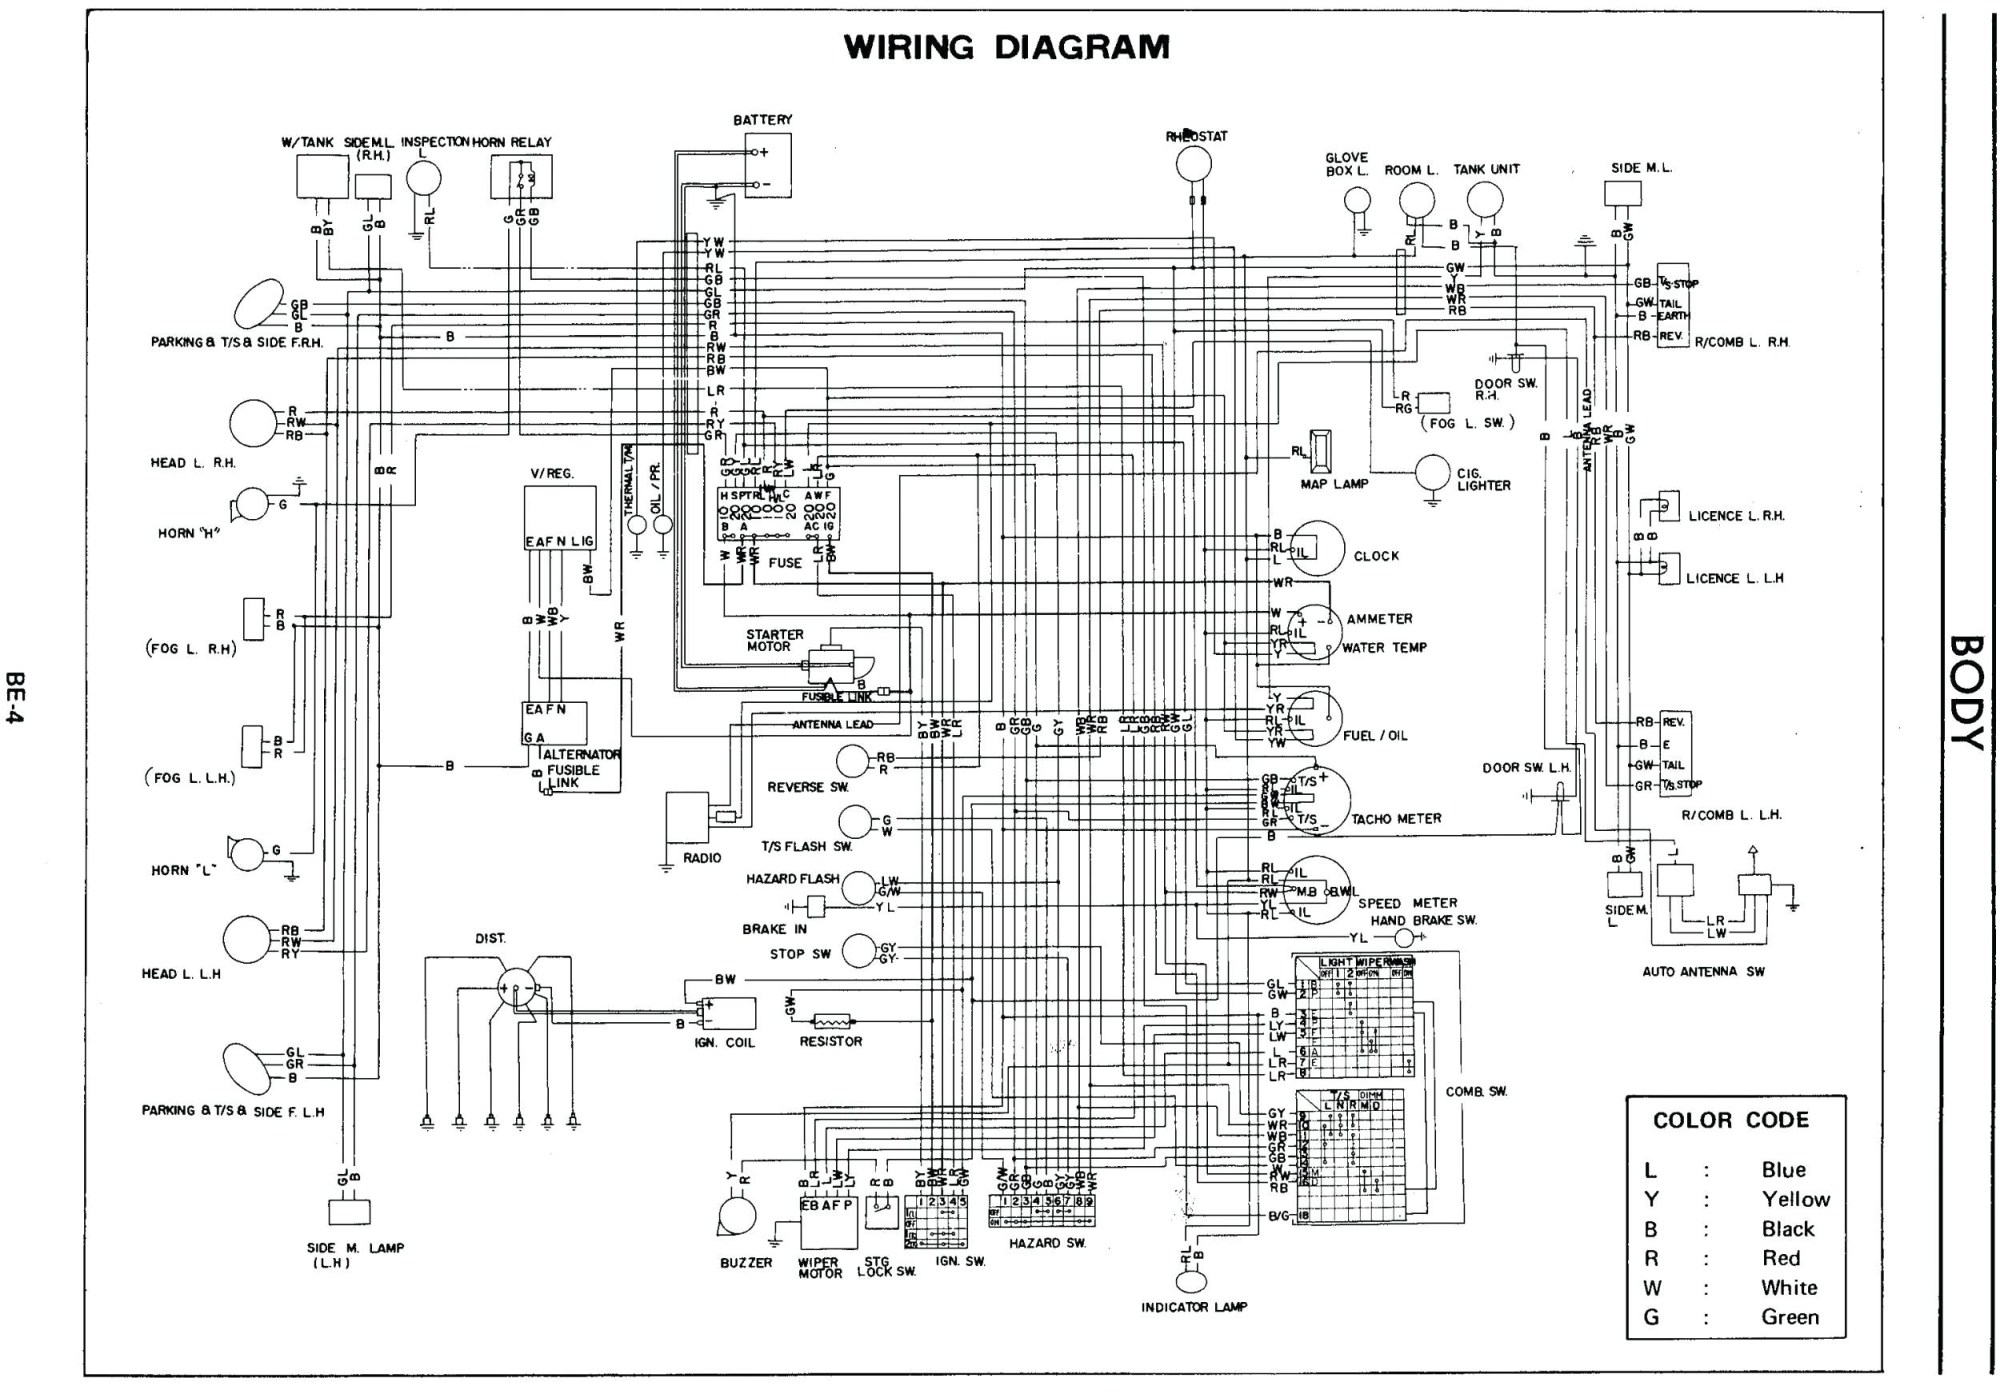 hight resolution of wrg 6653 2002 nissan pathfinder wiring diagram free download 2002 nissan pathfinder wiring diagram free download